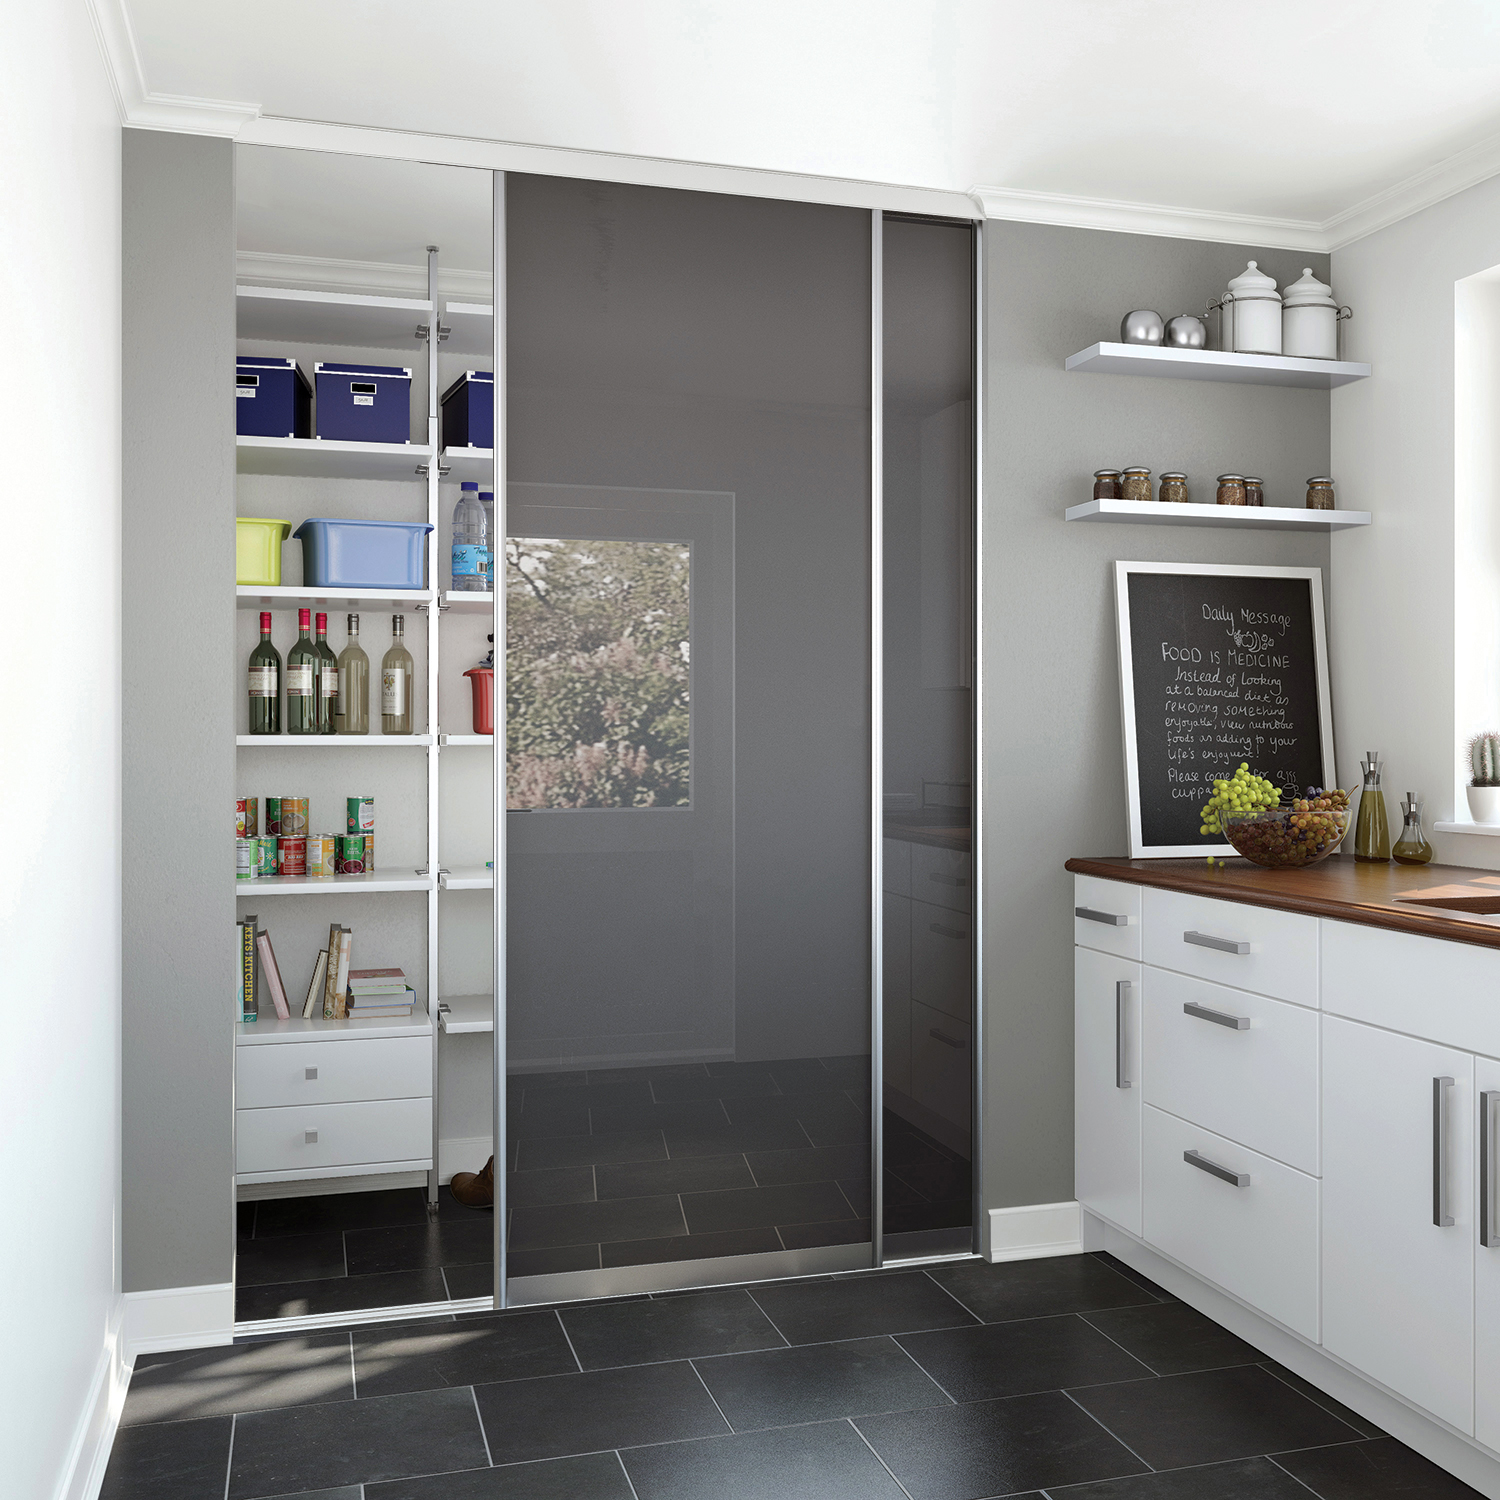 Pantry Ideas With Sliding Doors: Kitchen / Utility